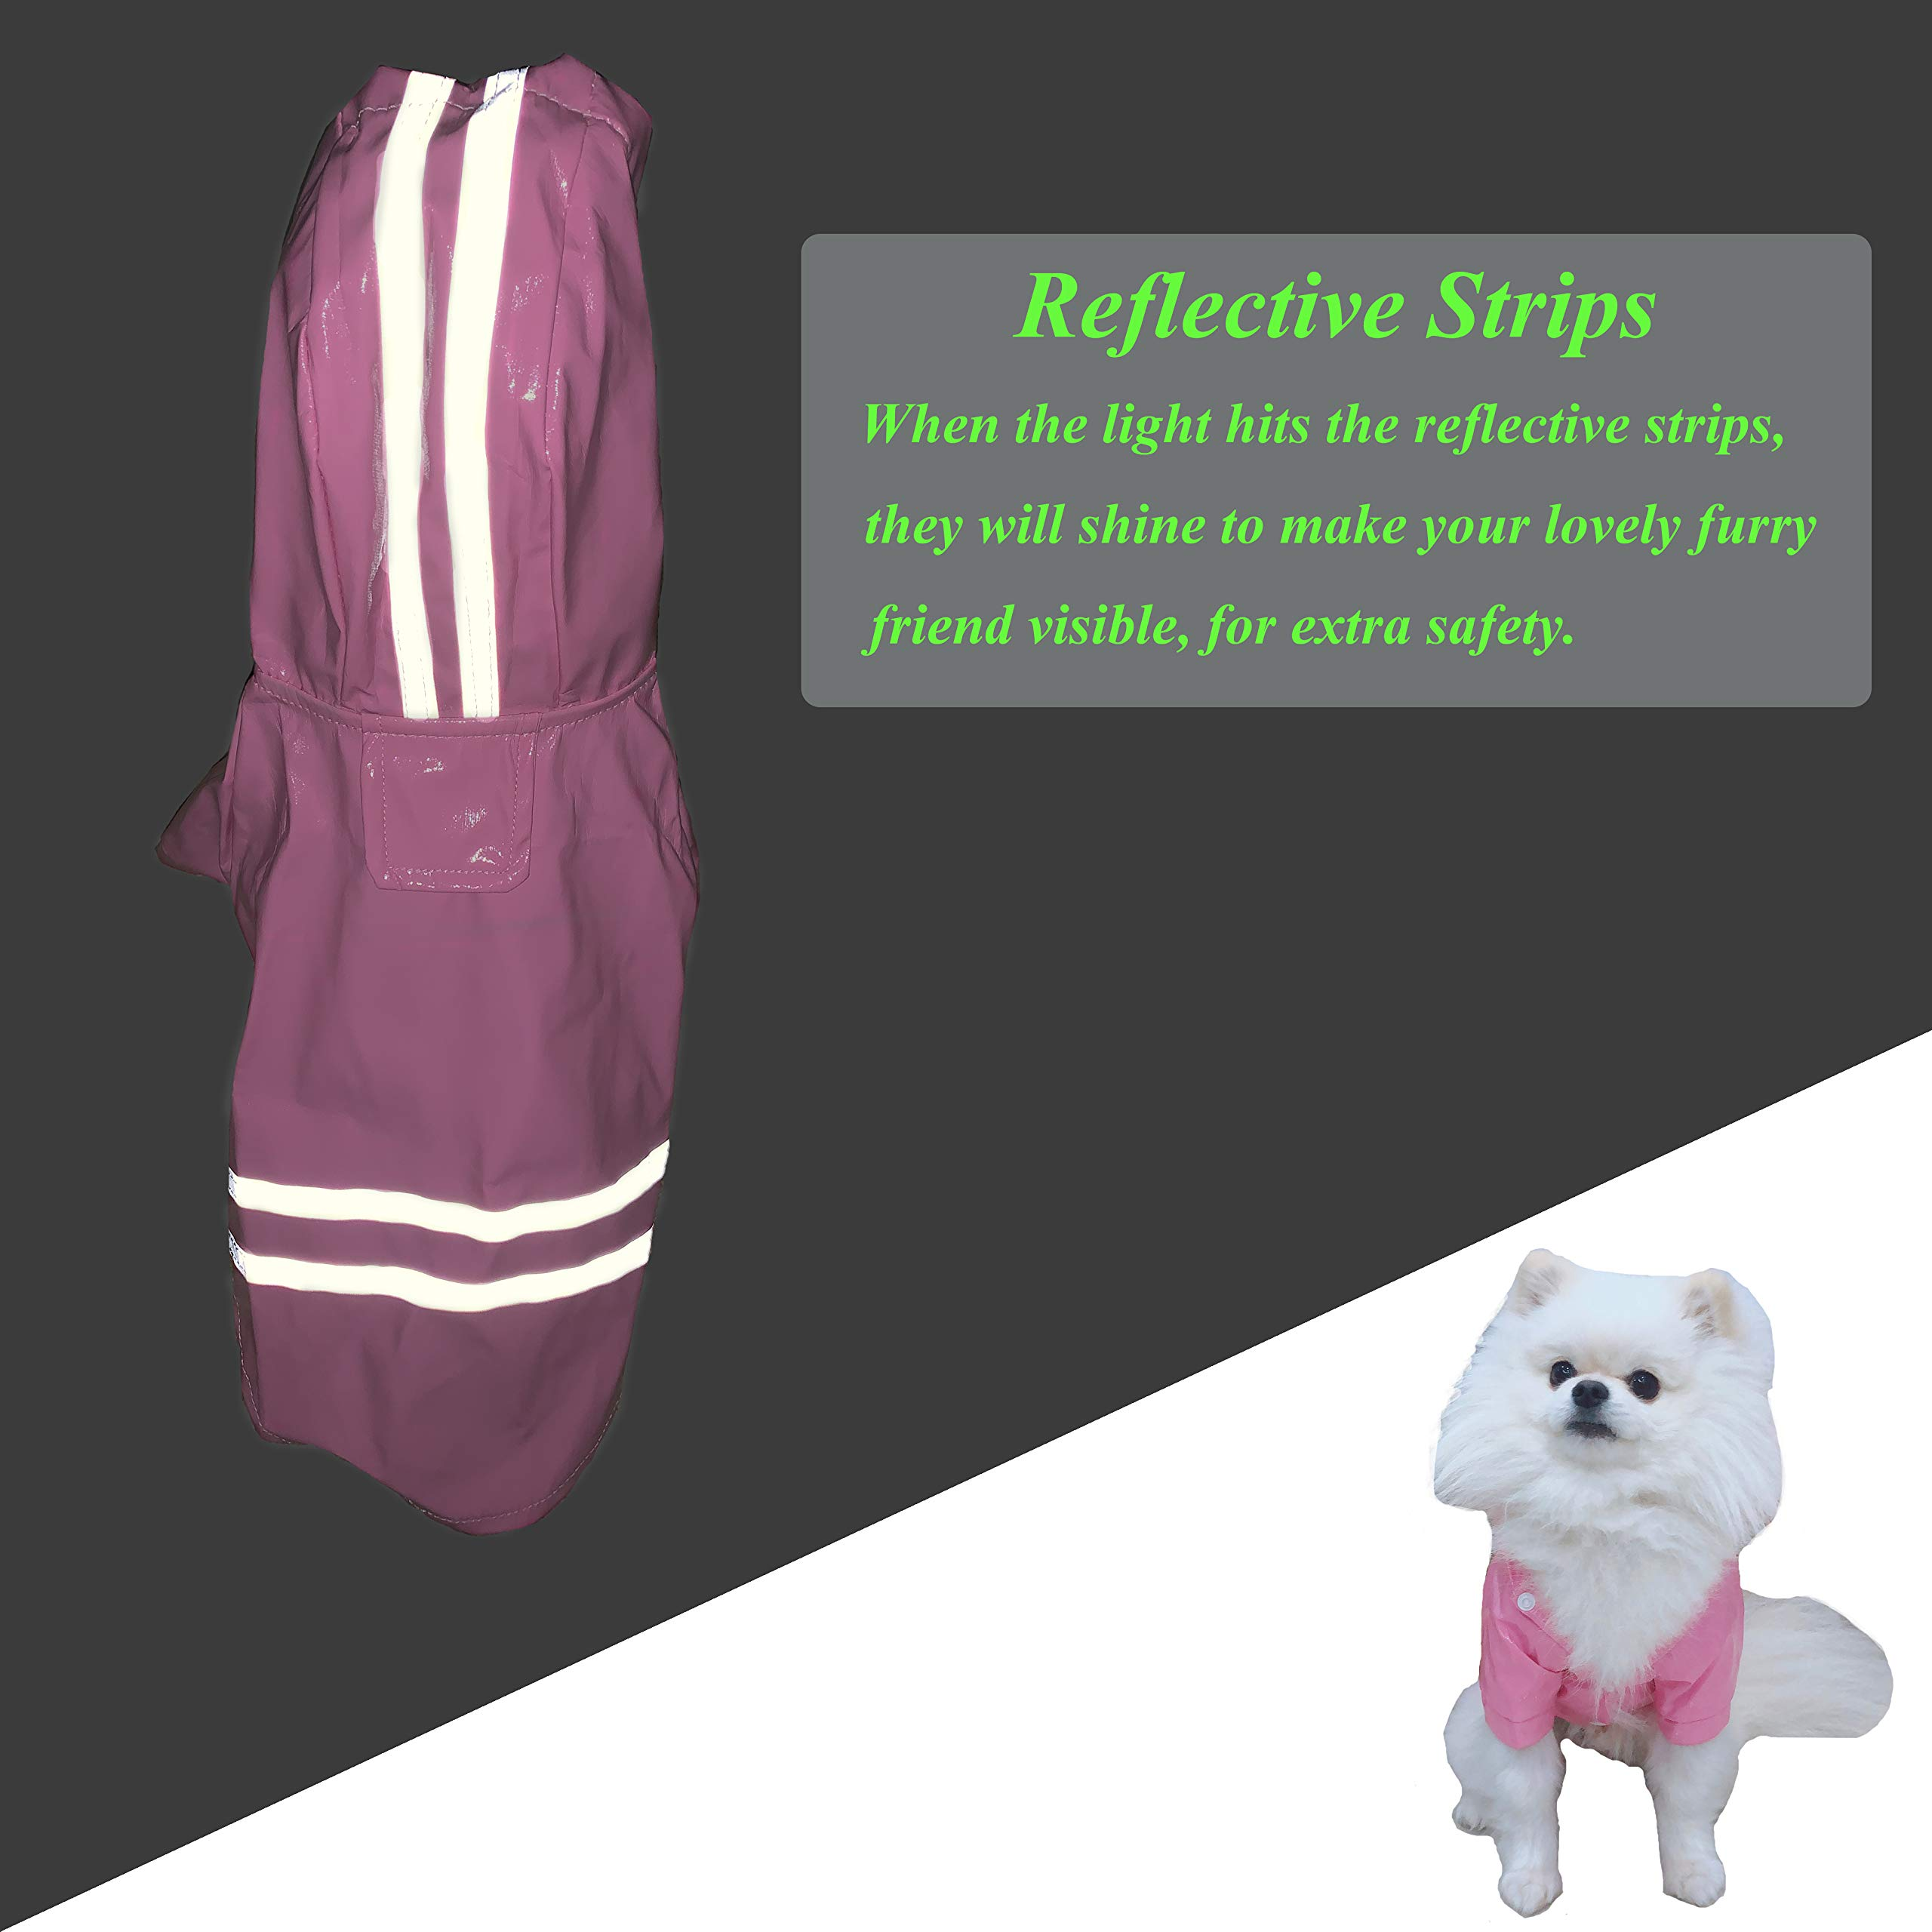 Cutie Pet Dog Raincoat Waterproof Coats for Dogs Lightweight Rain Jacket Breathable Rain Poncho Hooded Rainwear with Safety Reflective Stripes (M, Pink)